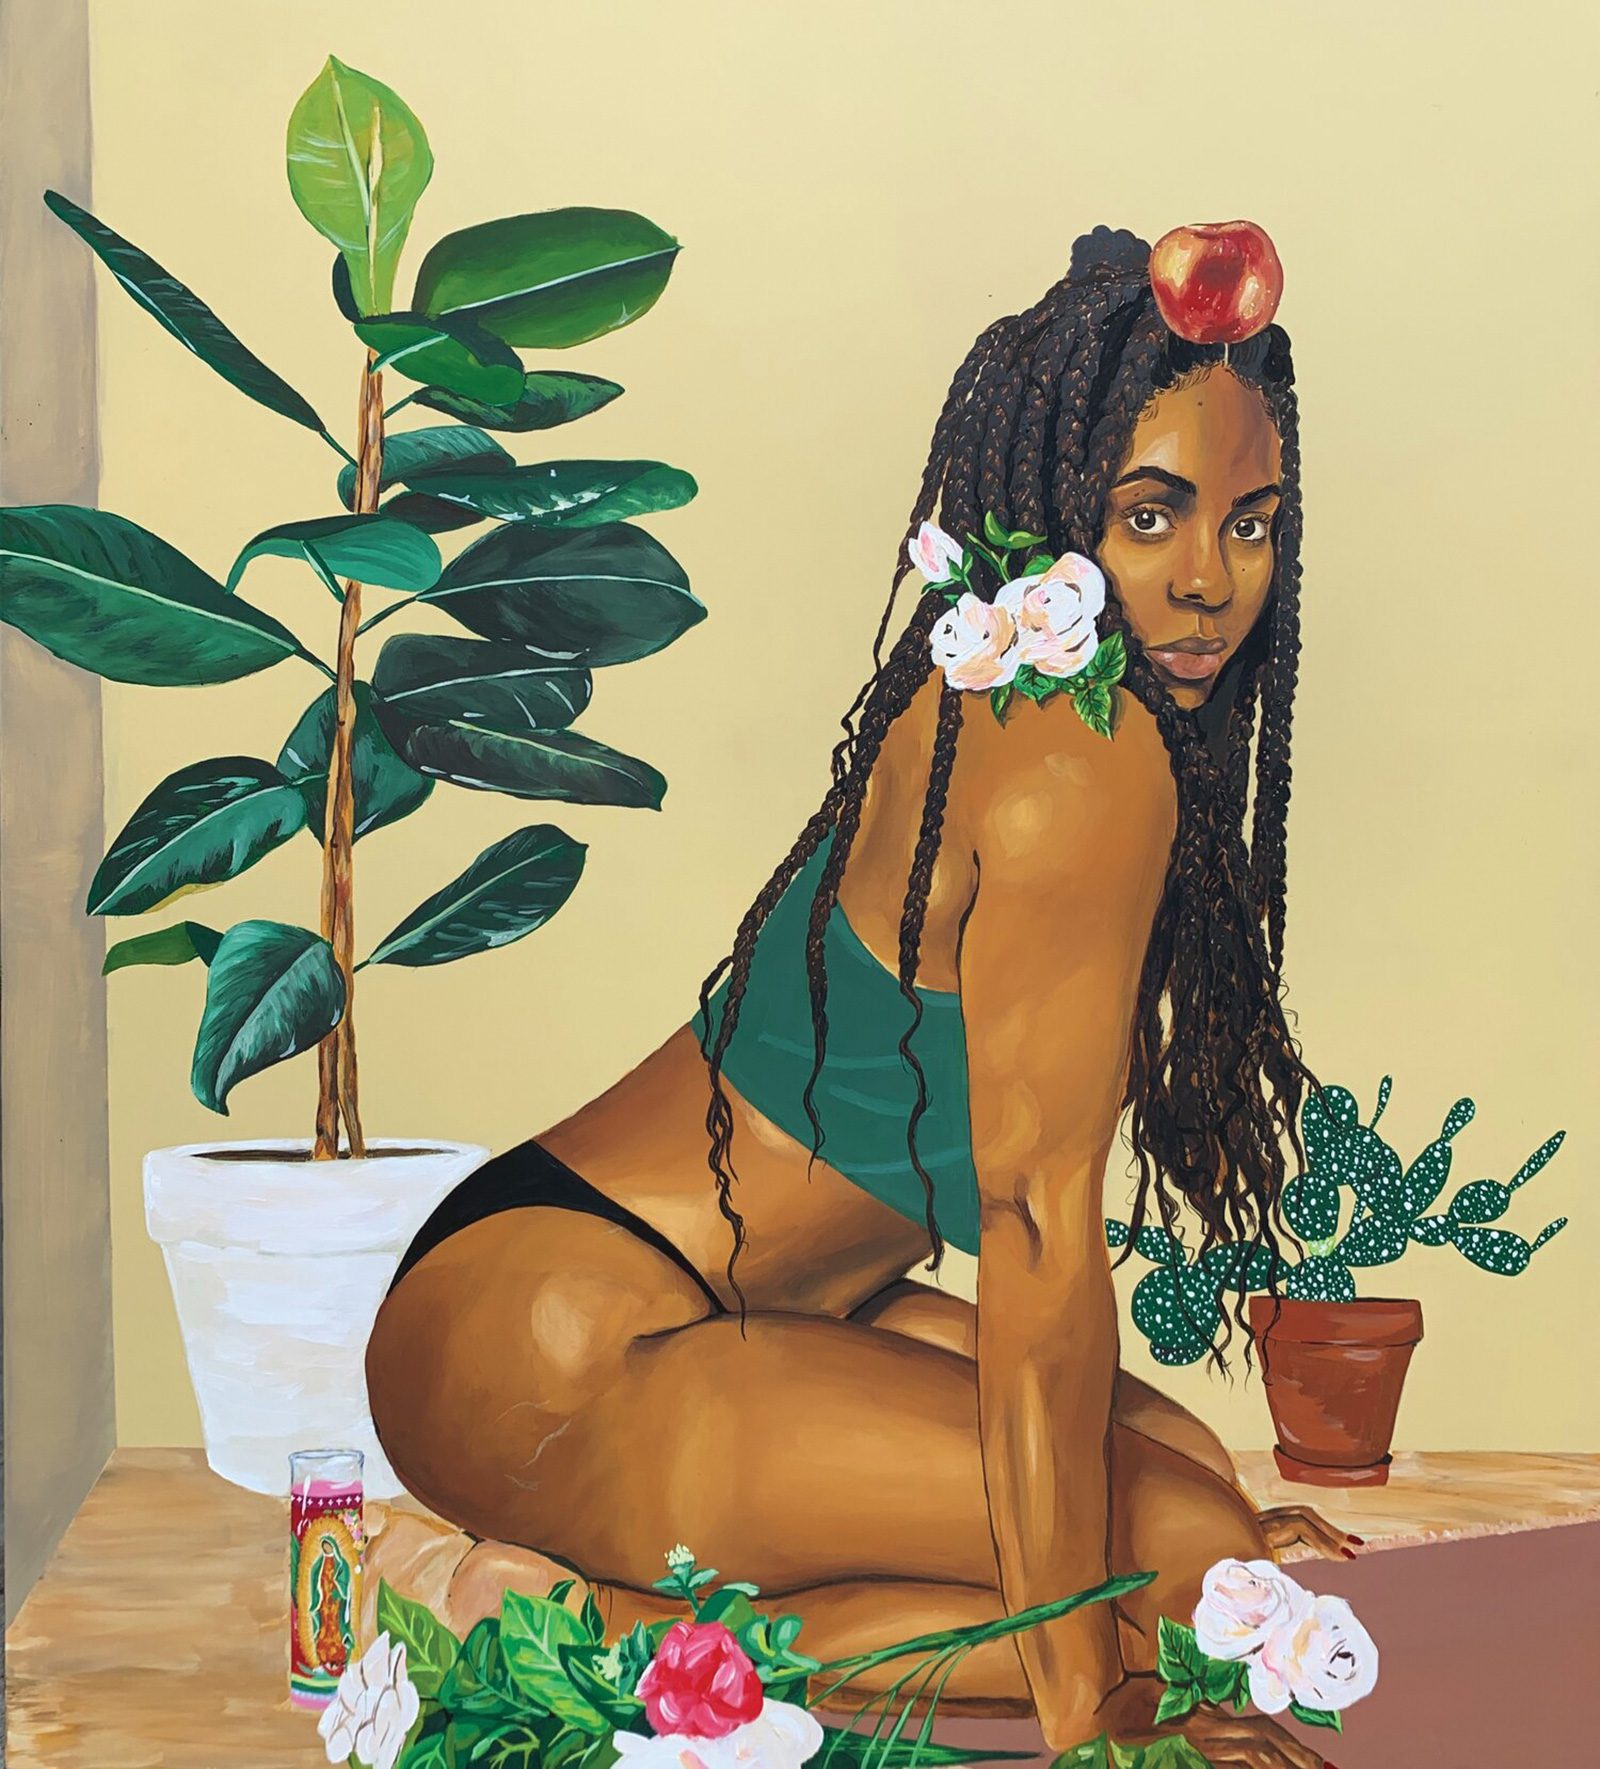 a self-portrait of artist Ari Brielle, a Black woman with long braids, kneeling on the ground surrounded by plants, flowers, and a prayer candle. She is wearing a green crop top and black bottoms while balancing an apple on her head